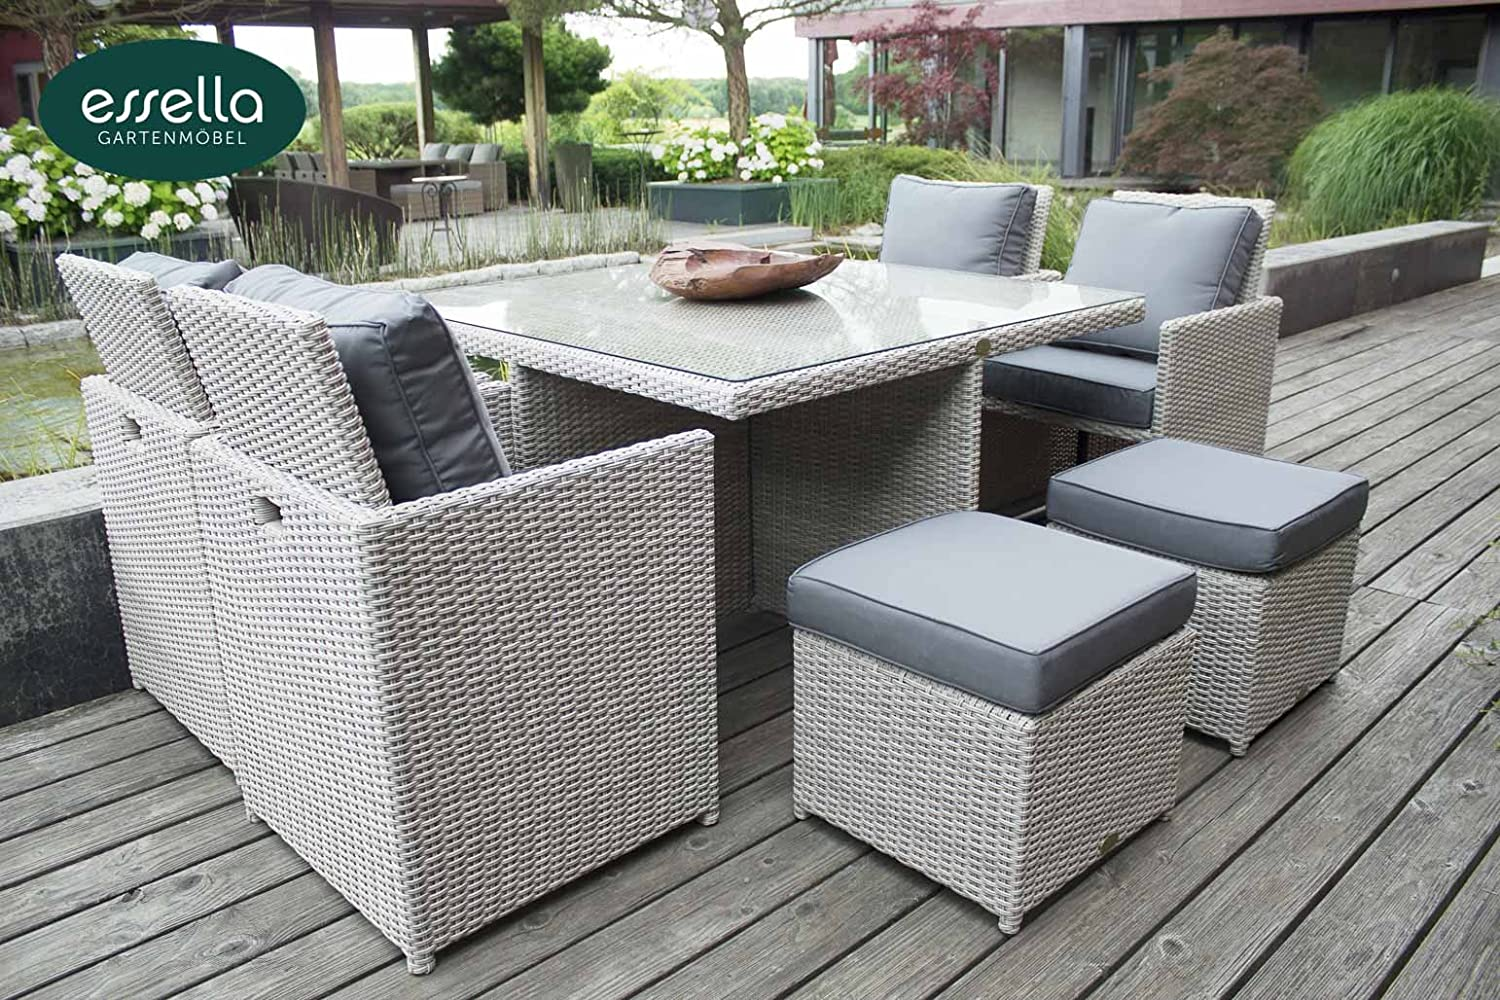 polyrattan sitzgruppe vienna 4 personen rundgeflecht vintage weiss gartenm bel. Black Bedroom Furniture Sets. Home Design Ideas